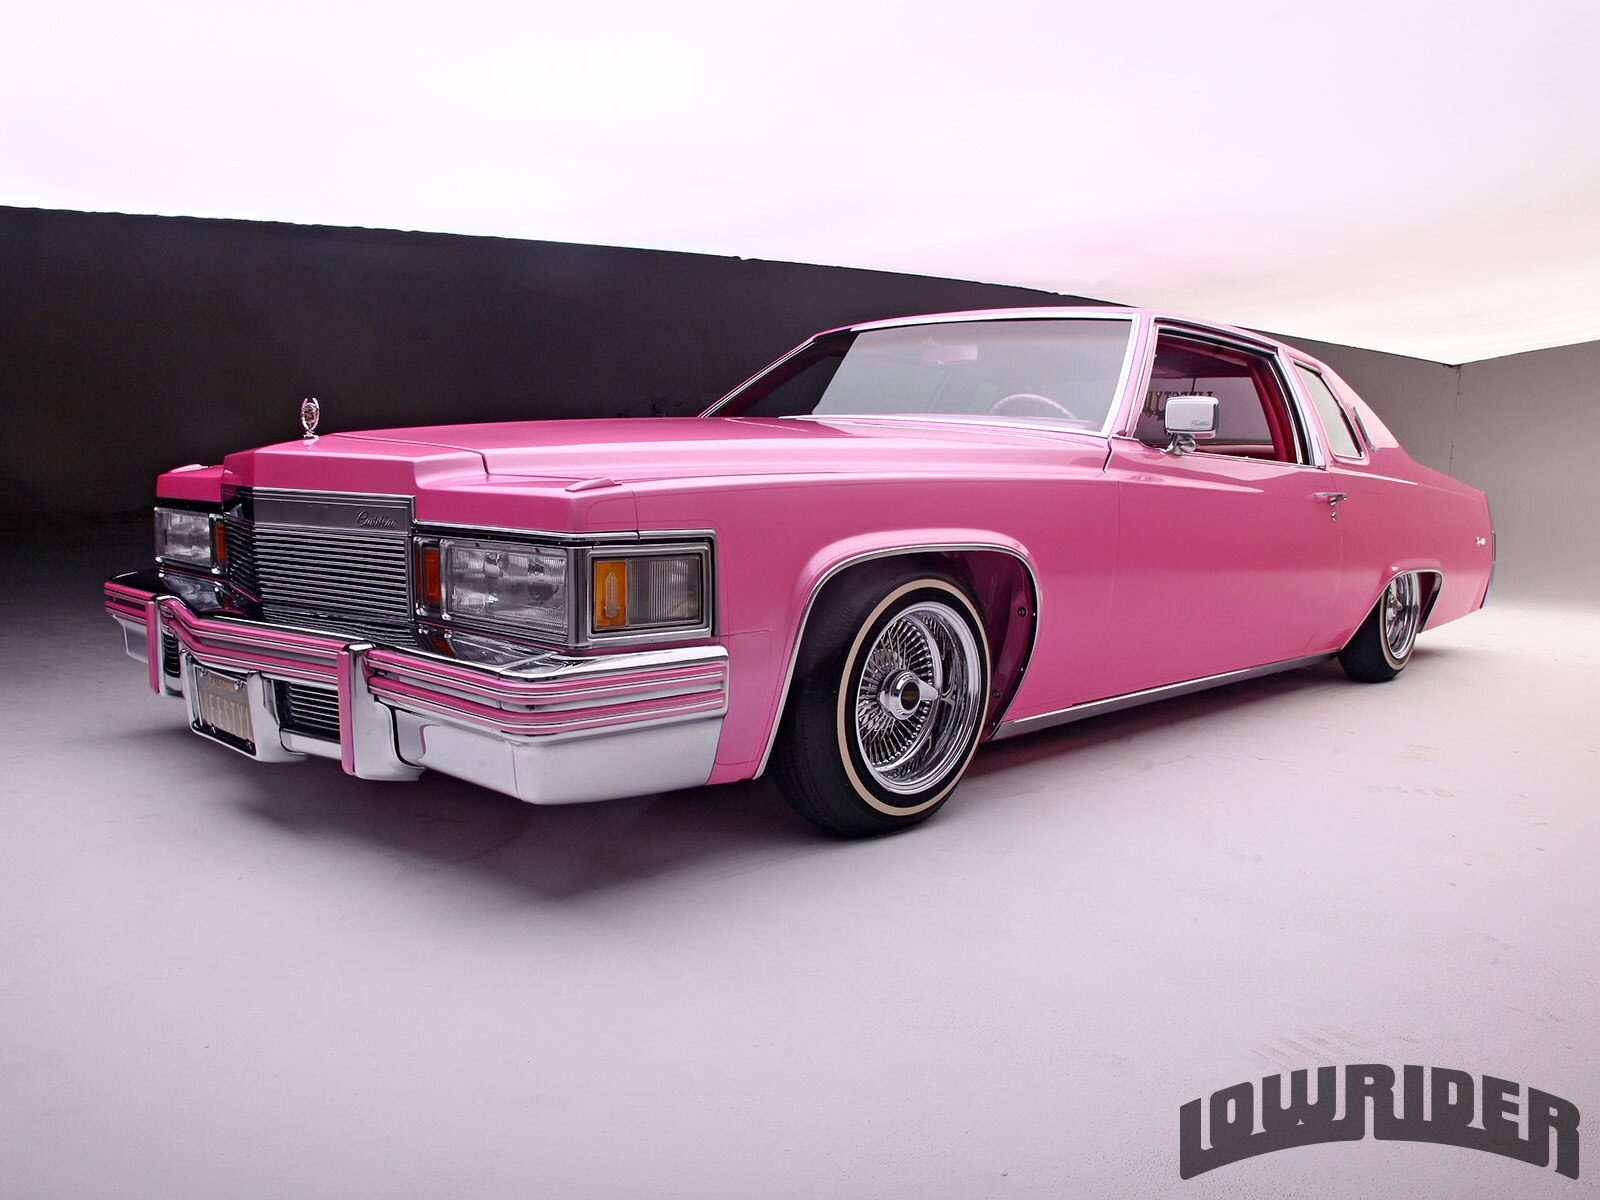 1979-cadillac-coupe-de-ville-front-left-side-view1